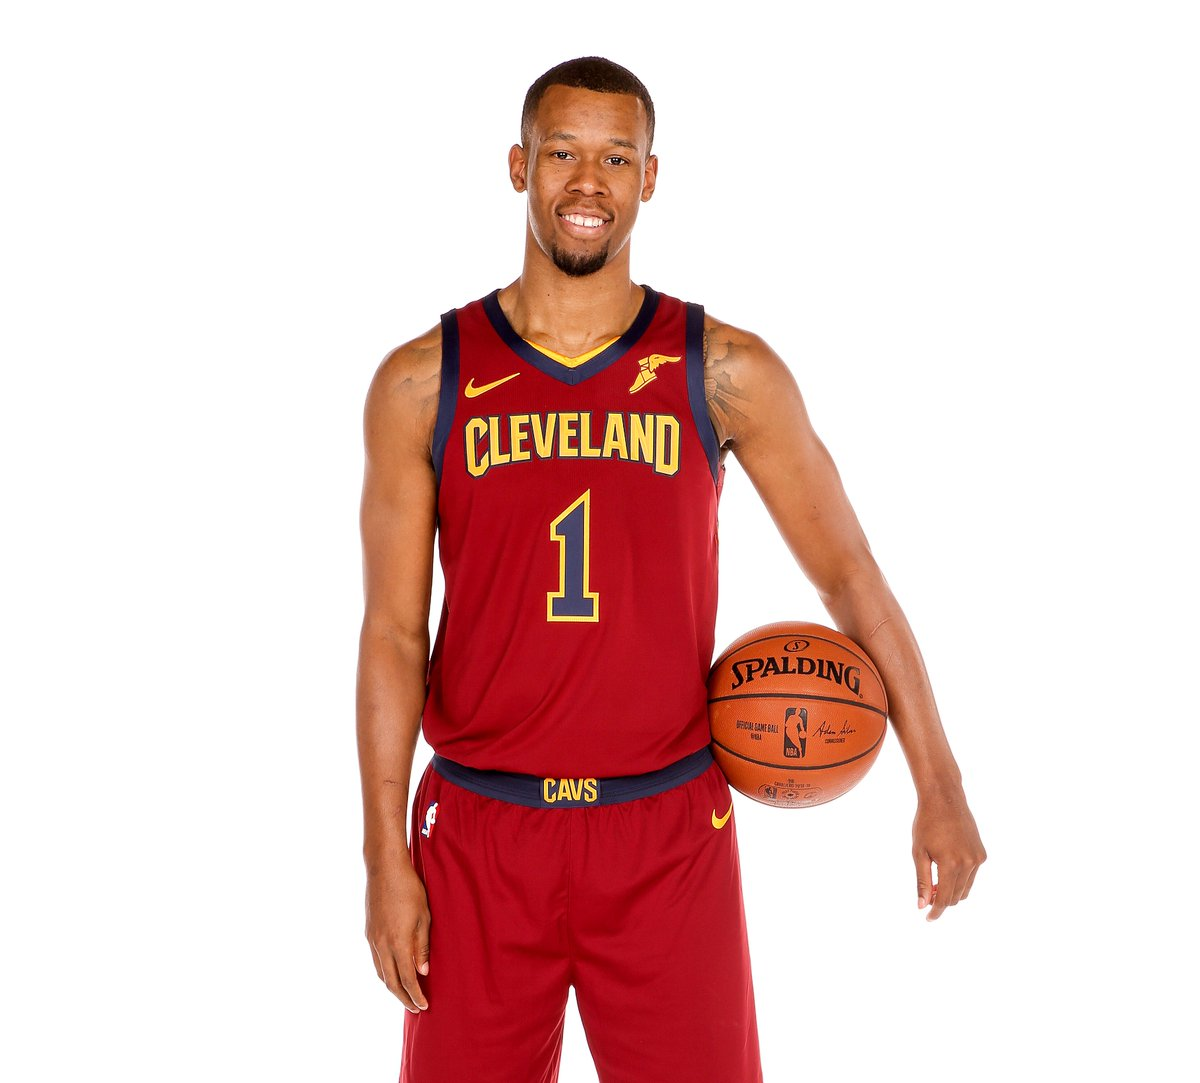 Join us in wishing Rodney Hood of the @cavs a HAPPY 26th BIRTHDAY! #NBABDAY